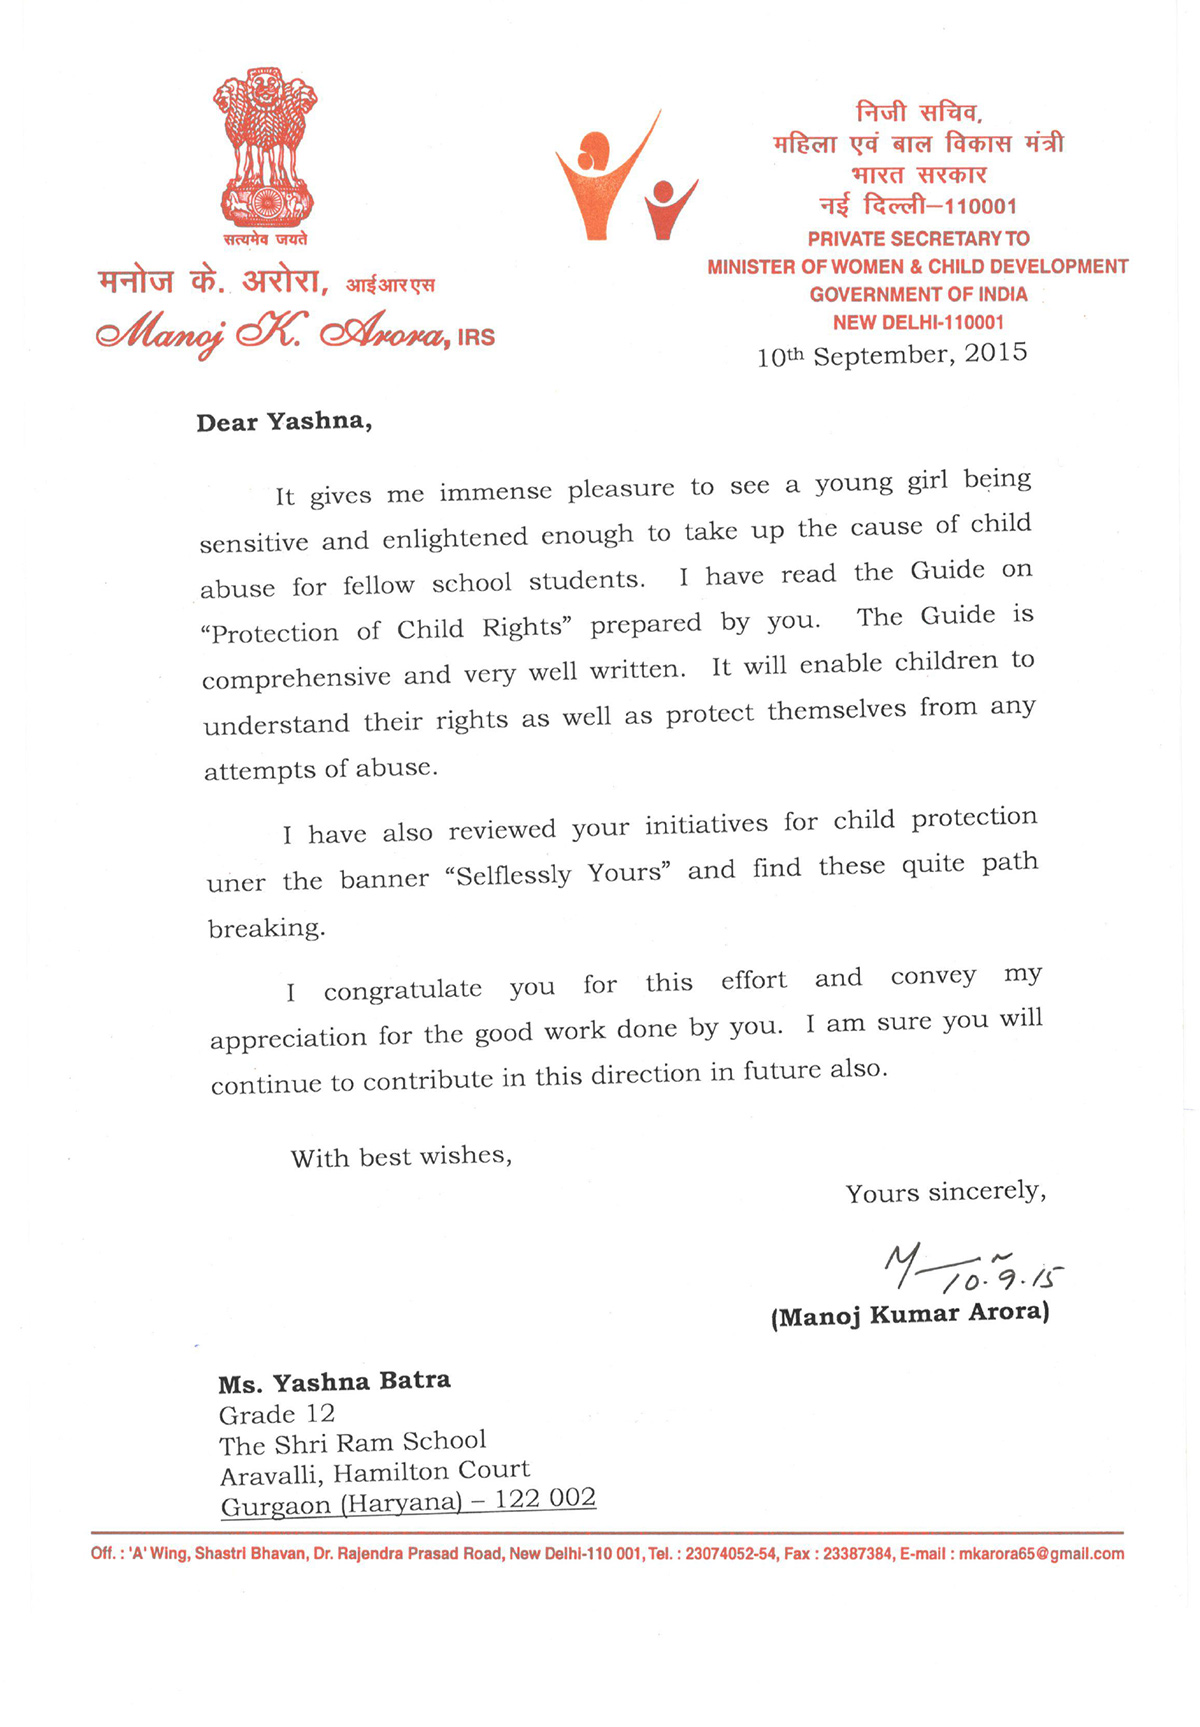 letter of appreciation from ministry of w and child righ letter of appreciation from ministry of w and child rights